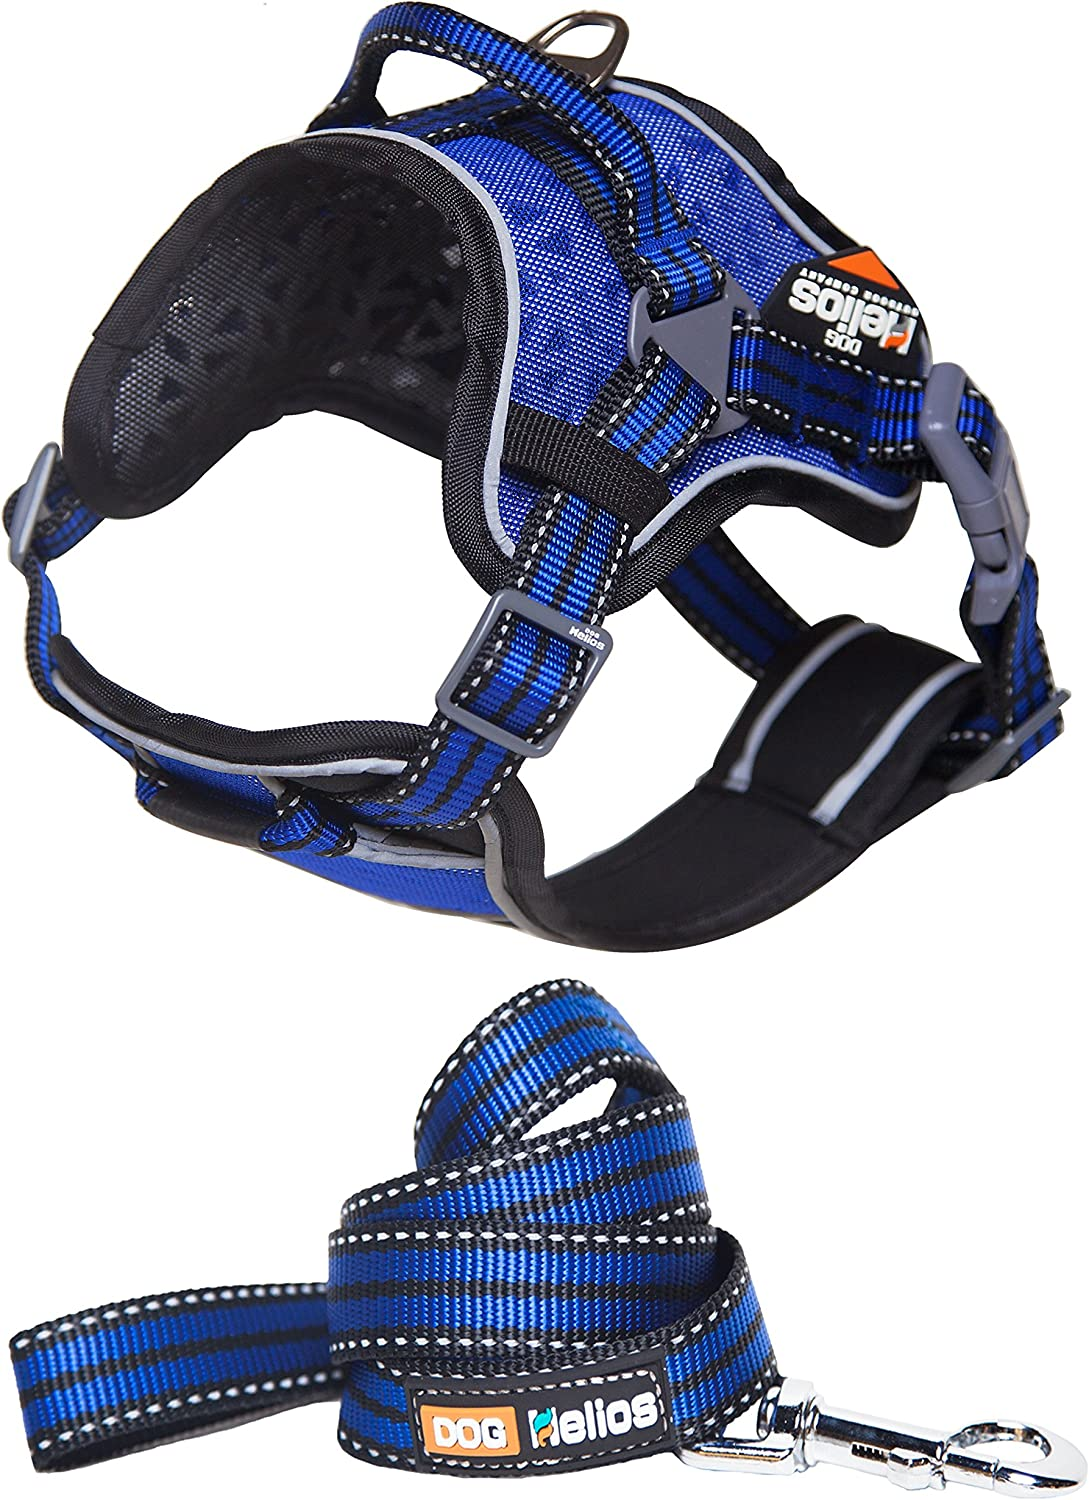 DOGHELIOS 'Journey Wander' Chest Compressive Sporty Adjustable Travel Pet Dog Harness and Leash Combination, Small, bluee